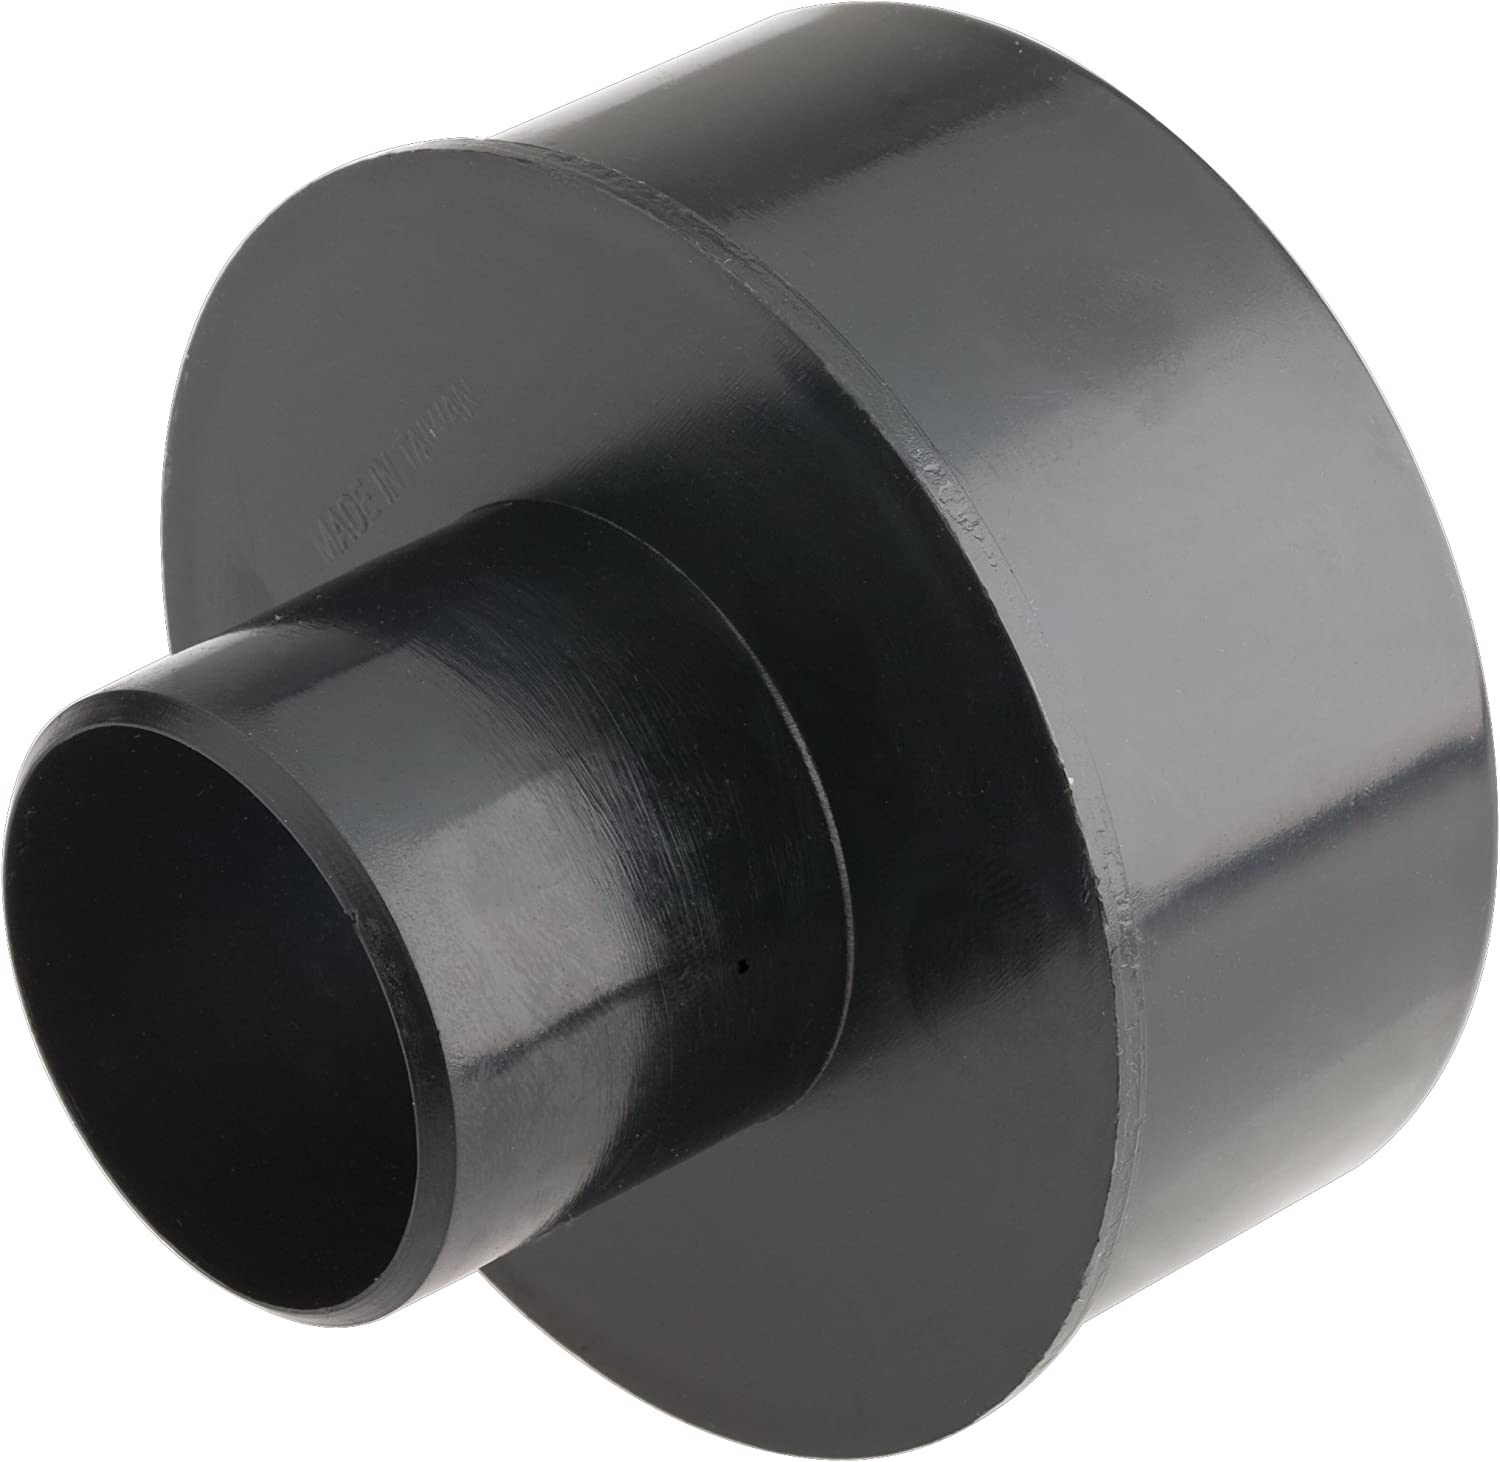 Woodstock D4226 4-Inch to 2-Inch Reducer